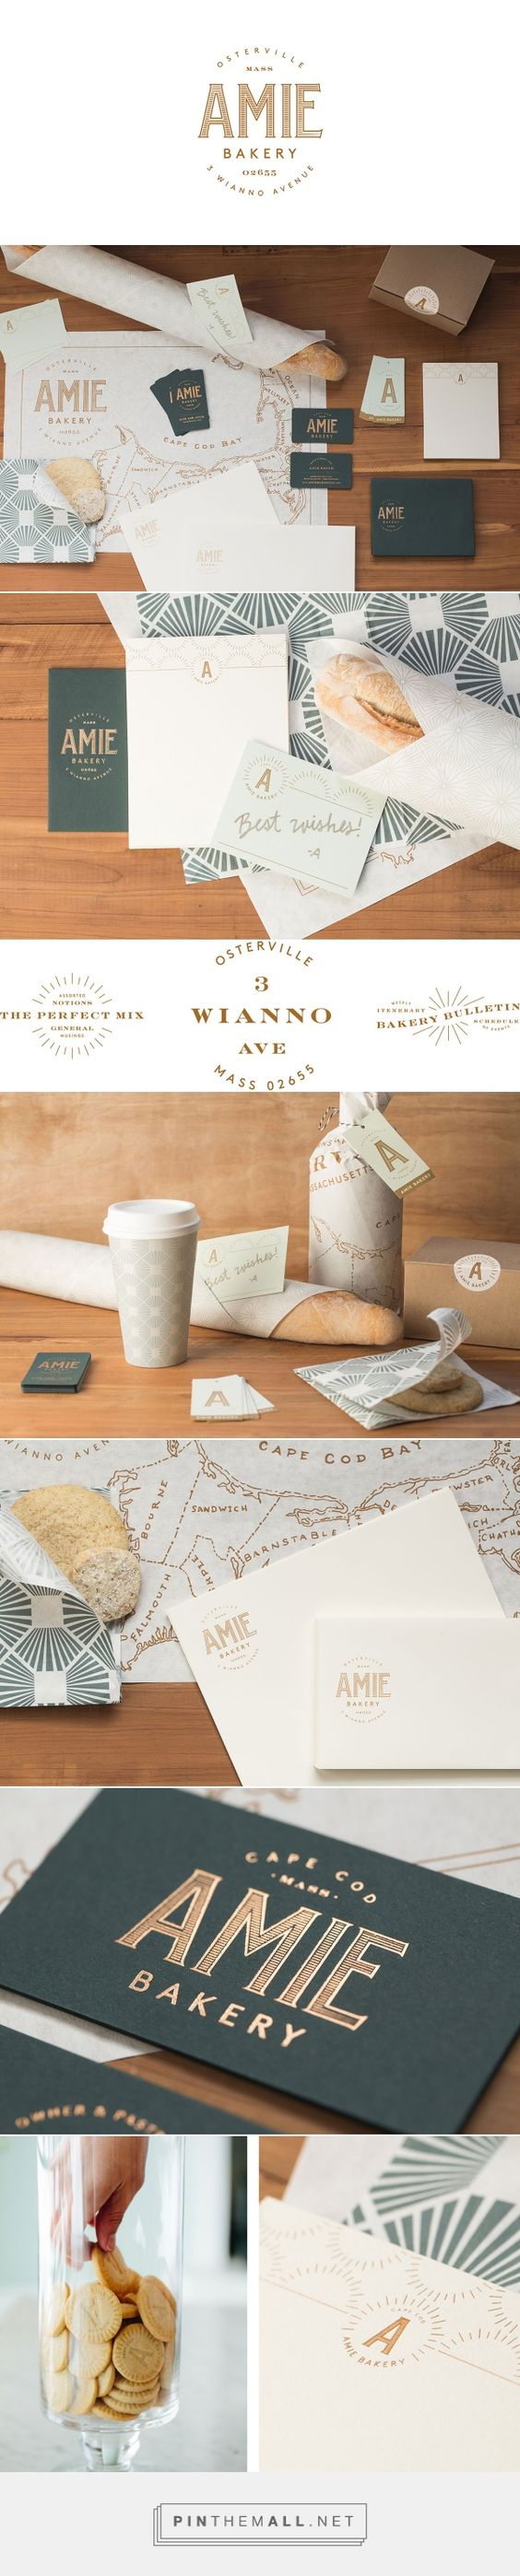 Amie Bakery on Behance by Peck & Co, Nashville, TN curated by Packaging Diva PD. Amie is a small, specialty bakery in downtown Cape Cod, that likes to think of itself as the town's kitchen. Branding, packaging, patter design.